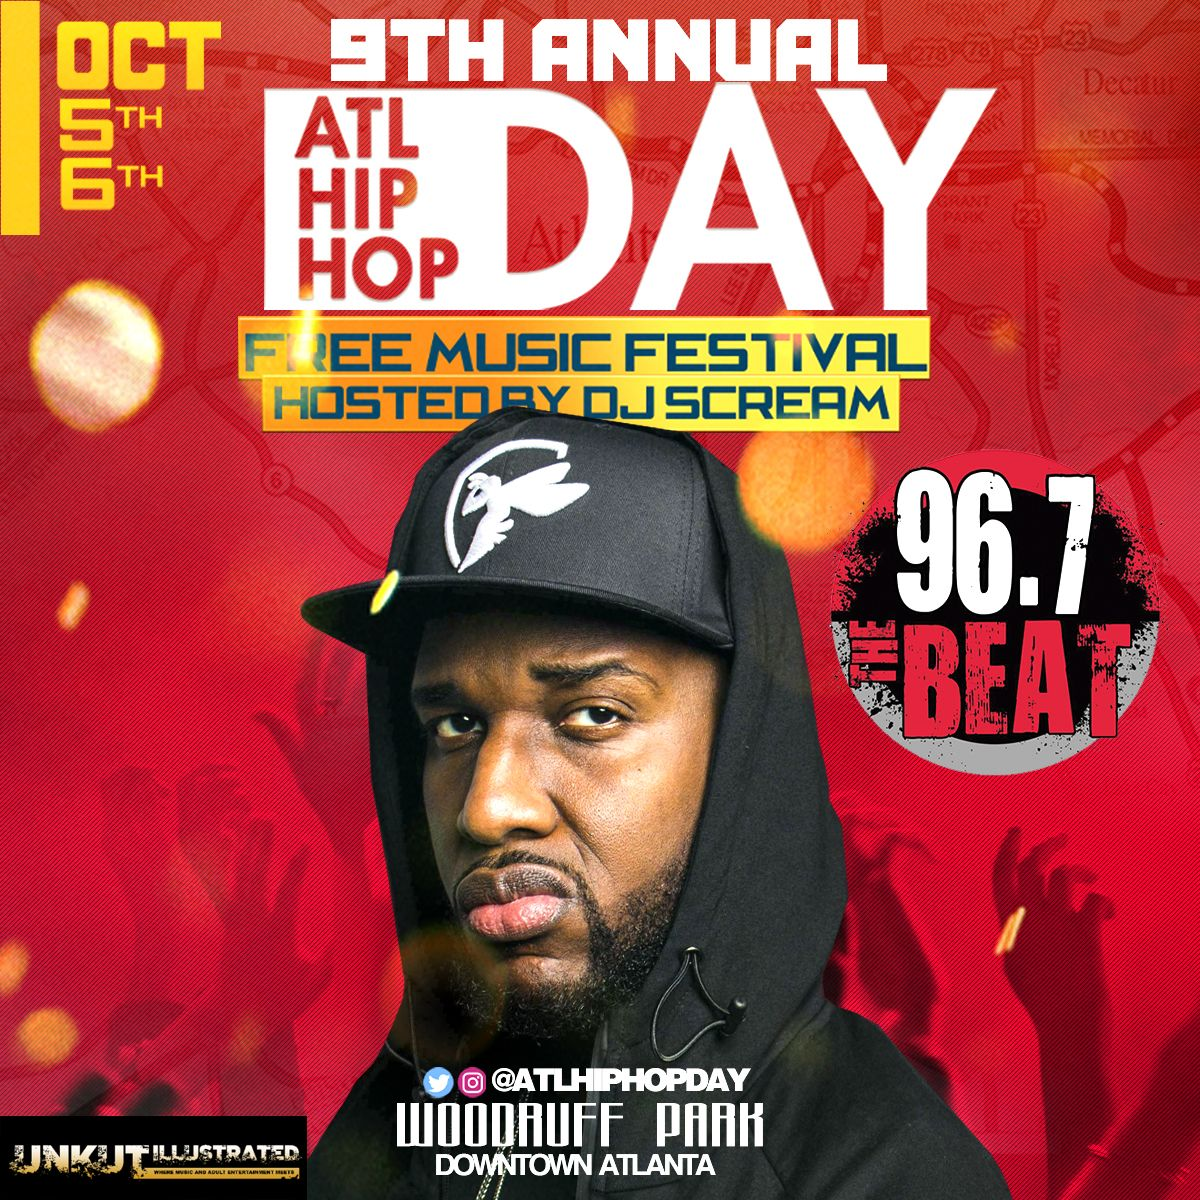 Atlanta Hip Hop Day